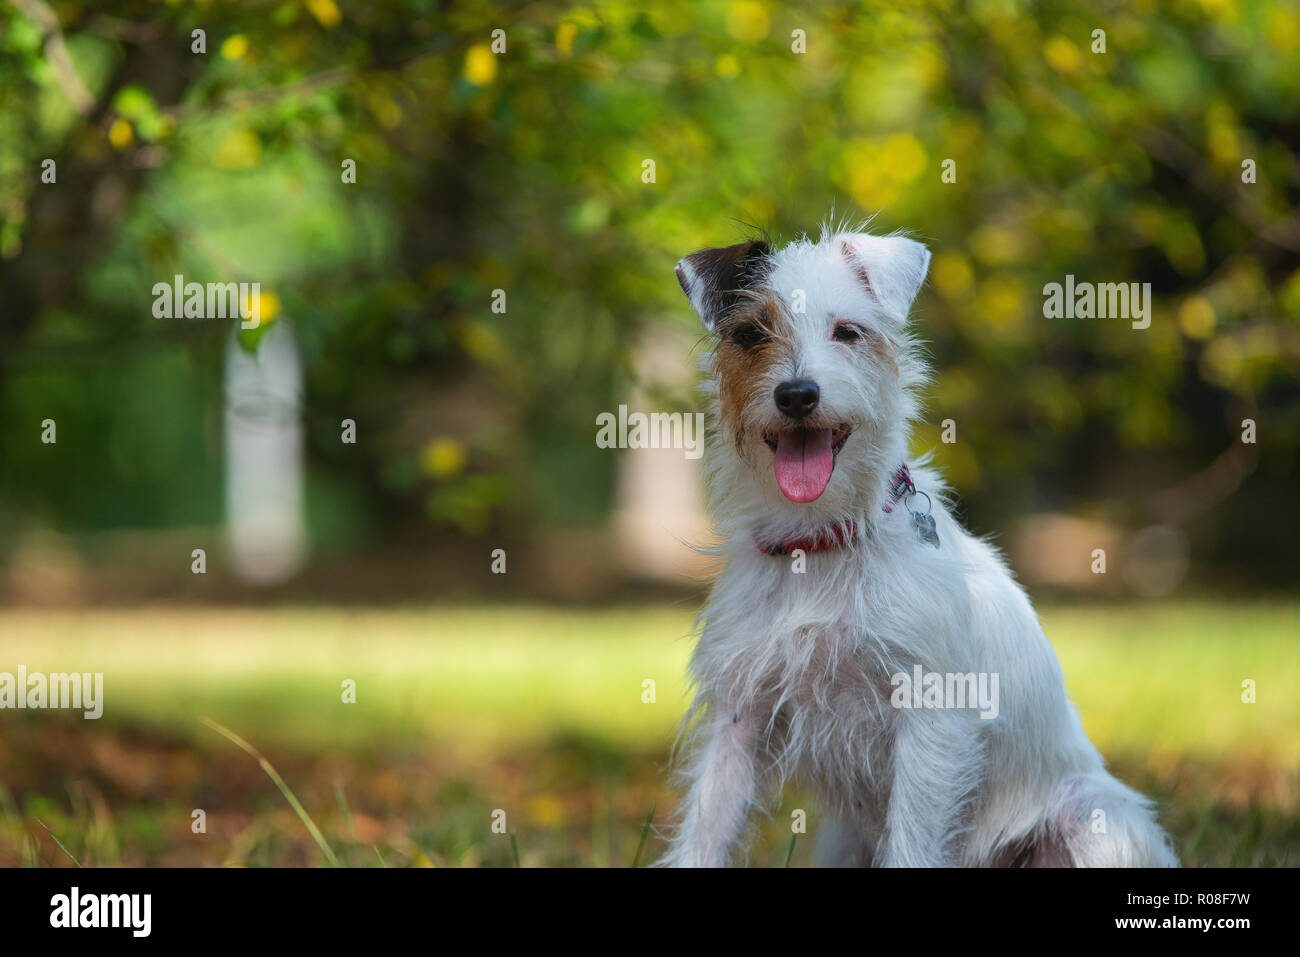 Portrait of a Parson Russell Terrier in a city park - Stock Image